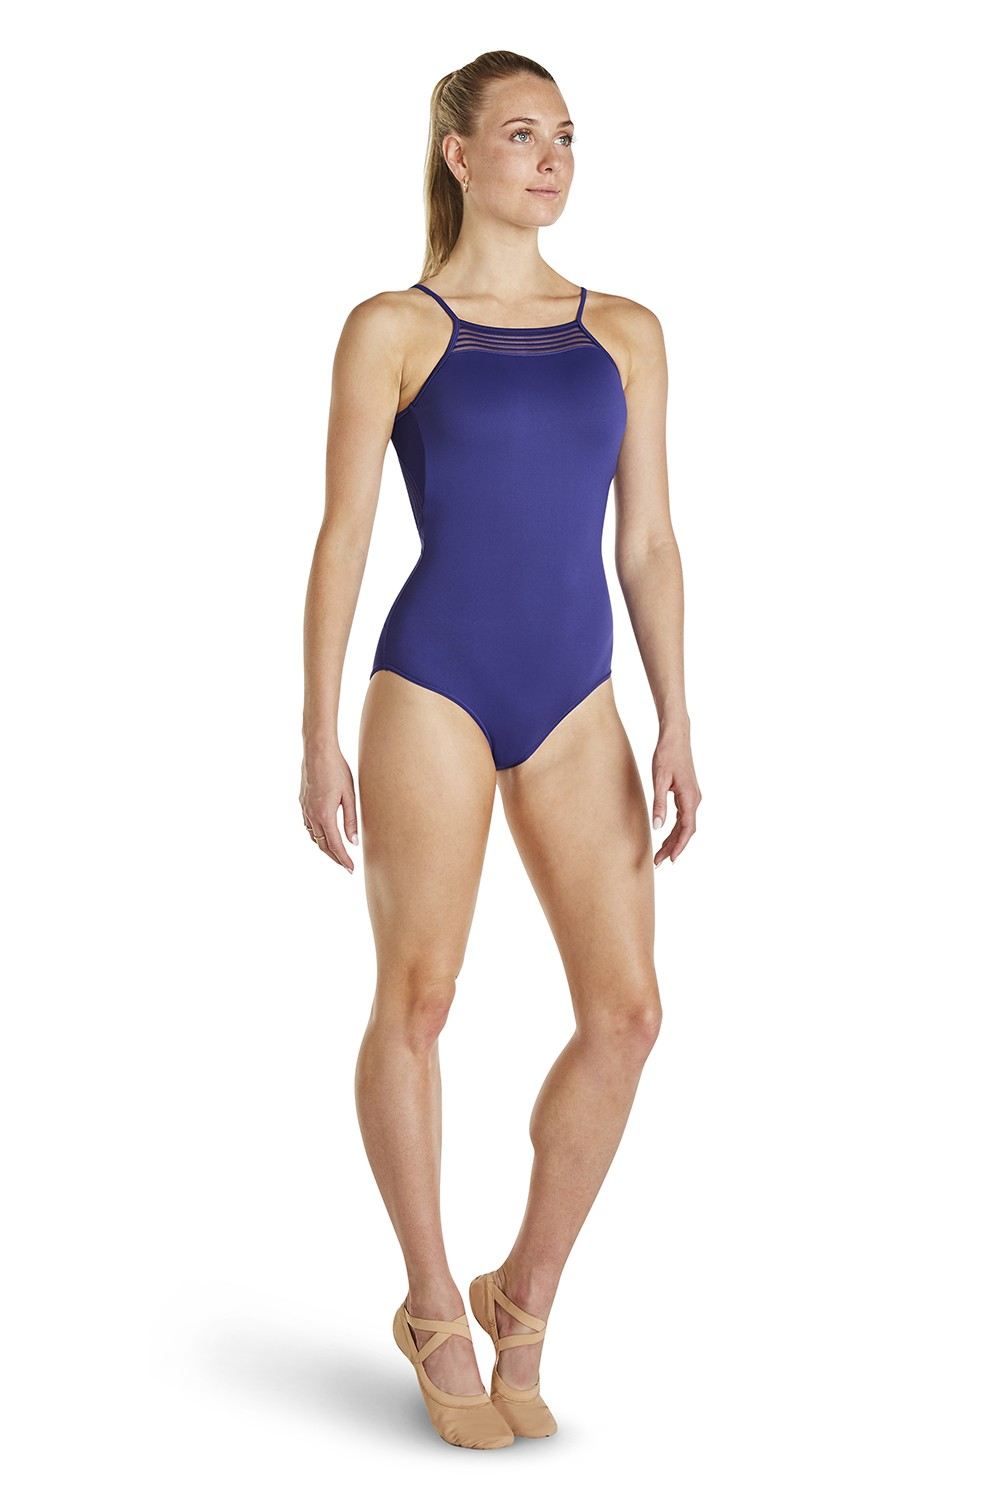 Keyhole Cami Leo Women's Dance Leotards